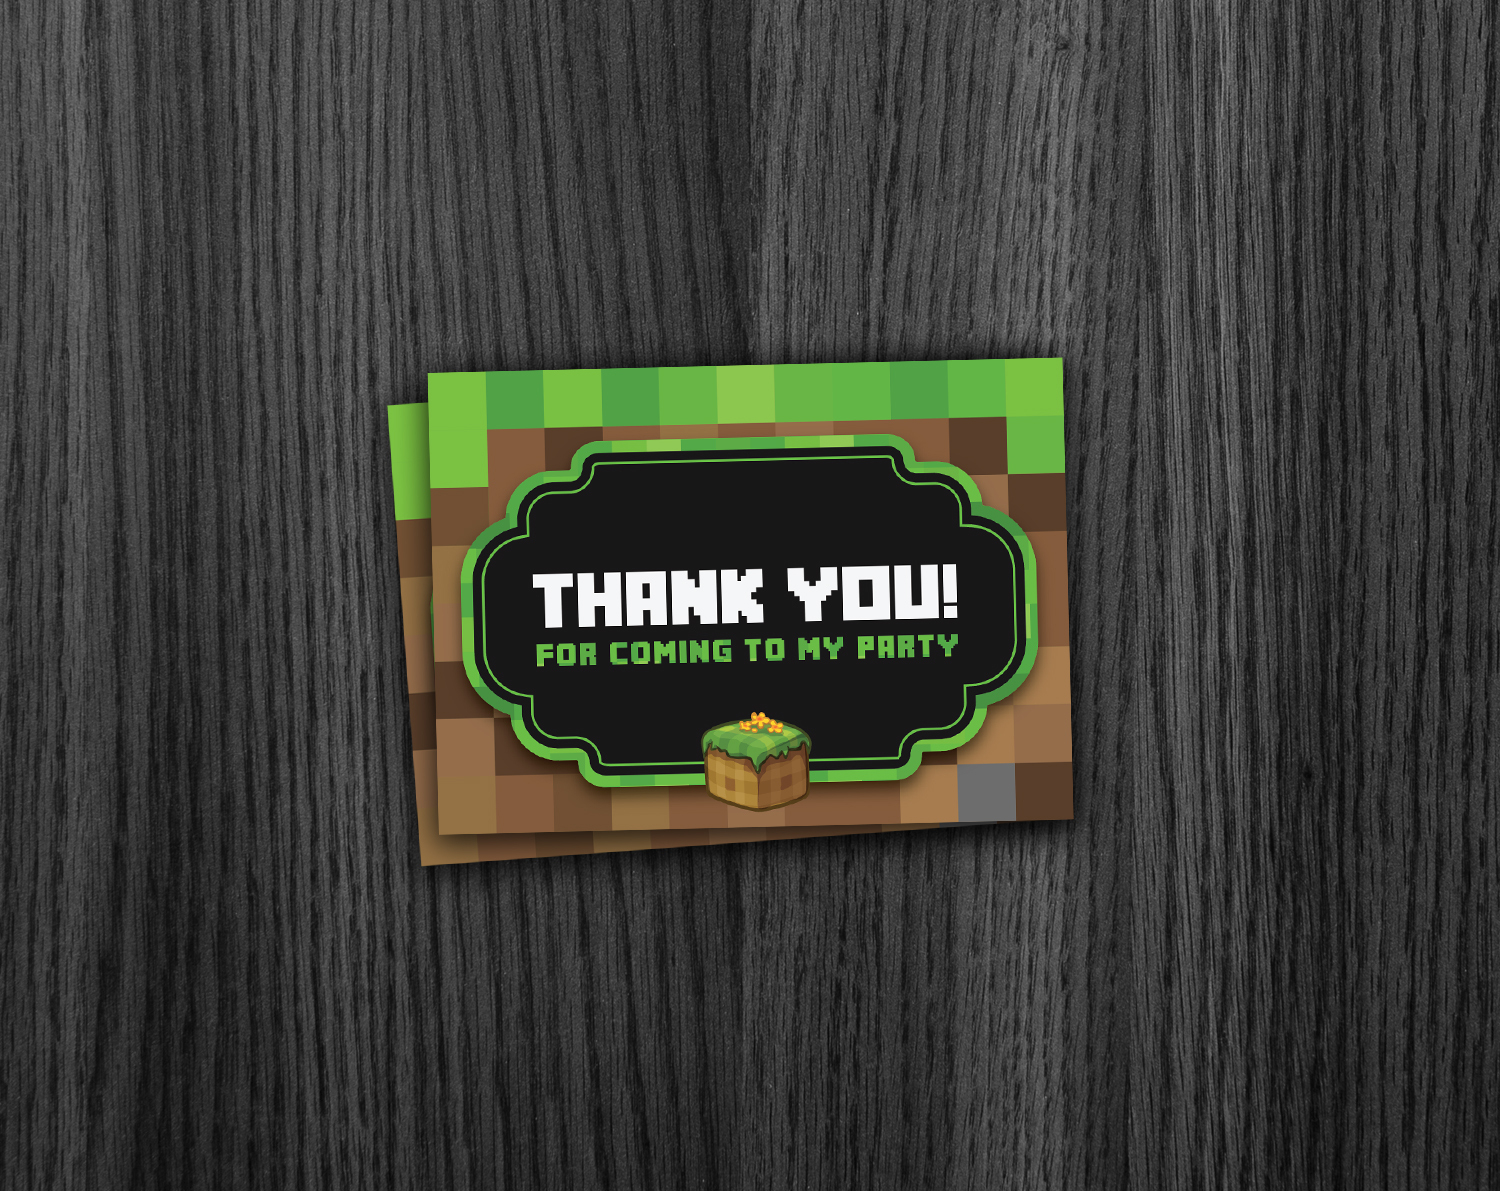 Free Printable Minecraft Thank You Notes | Download Them Or Print - Free Printable Minecraft Thank You Notes